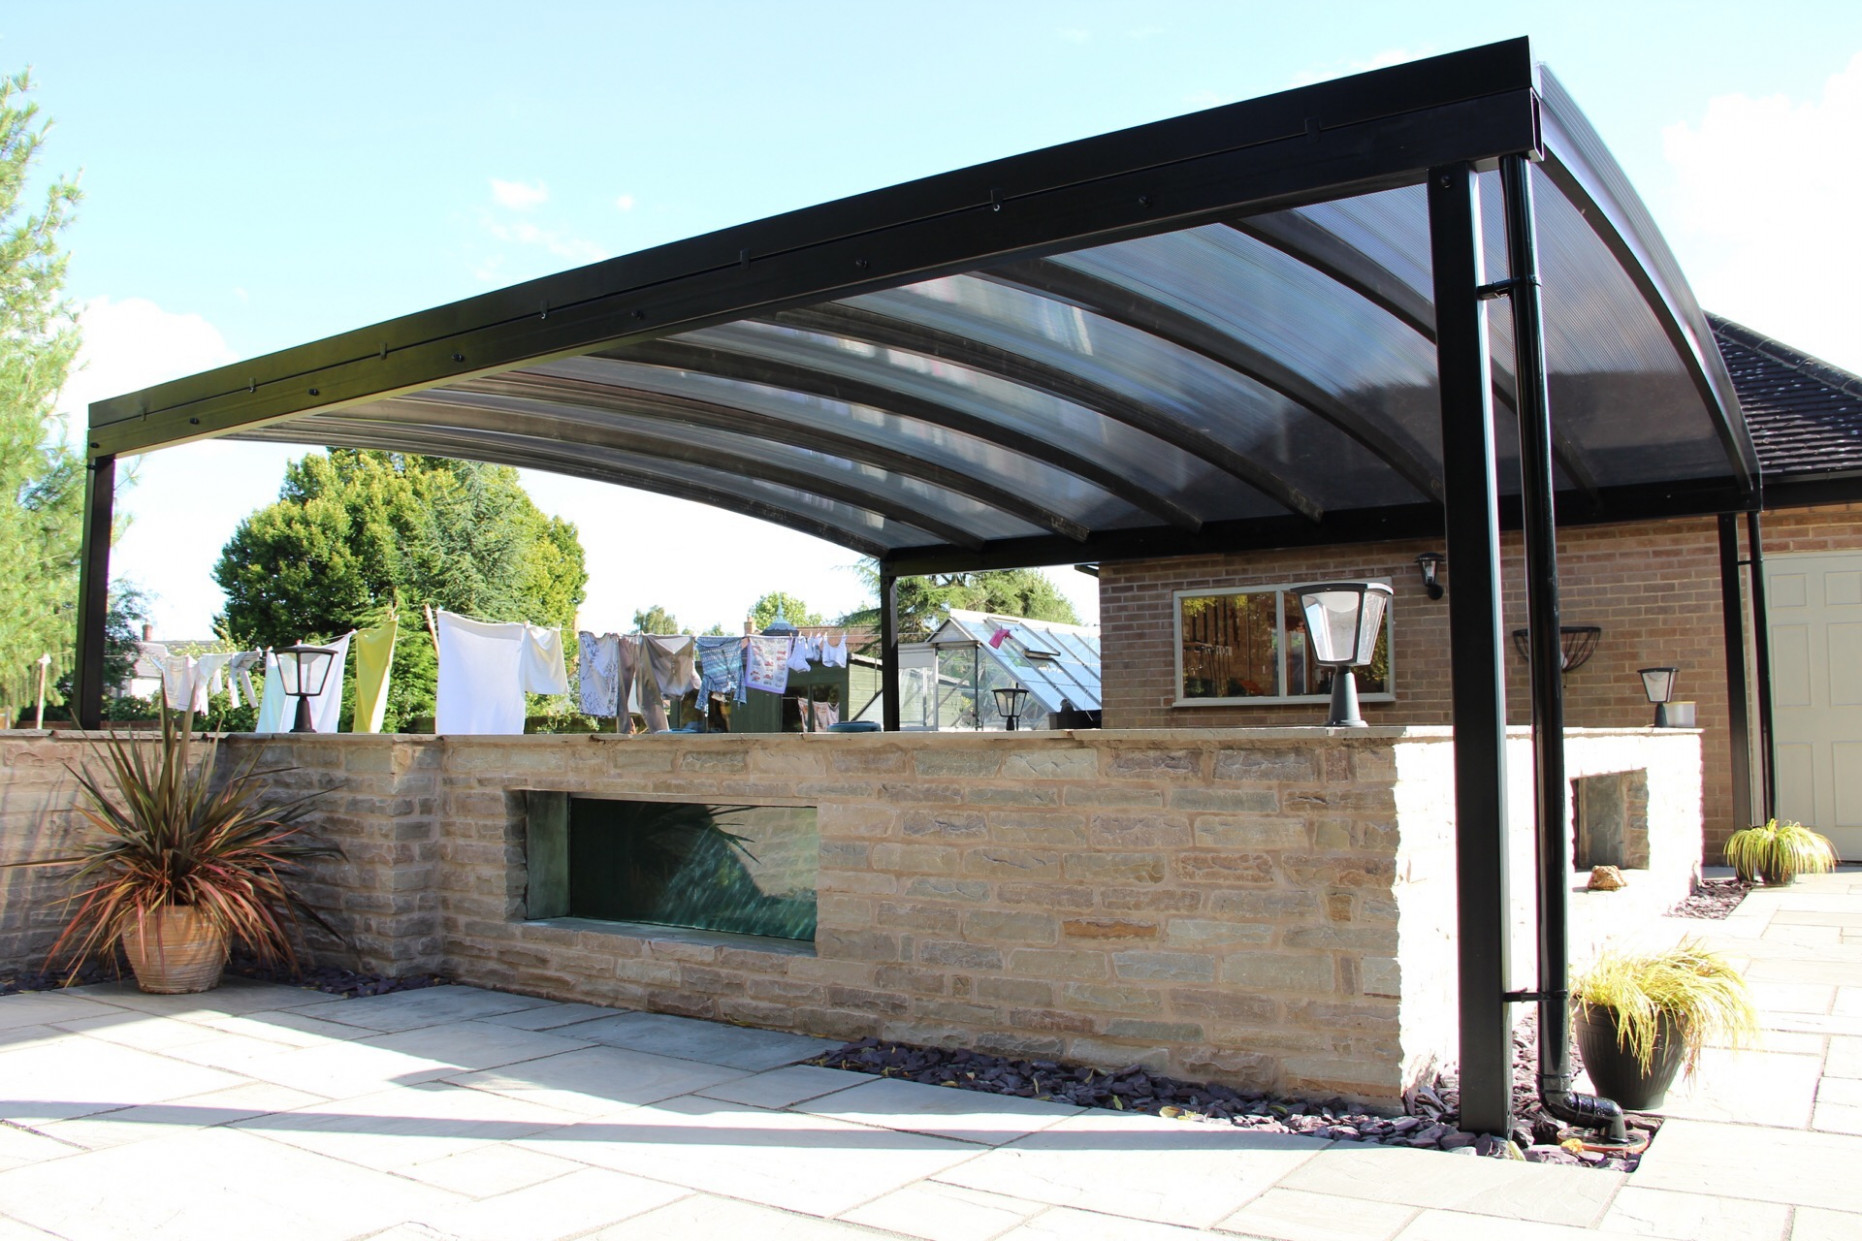 Koi Pond Canopy Installed in Derbyshire | Kappion Carports ...